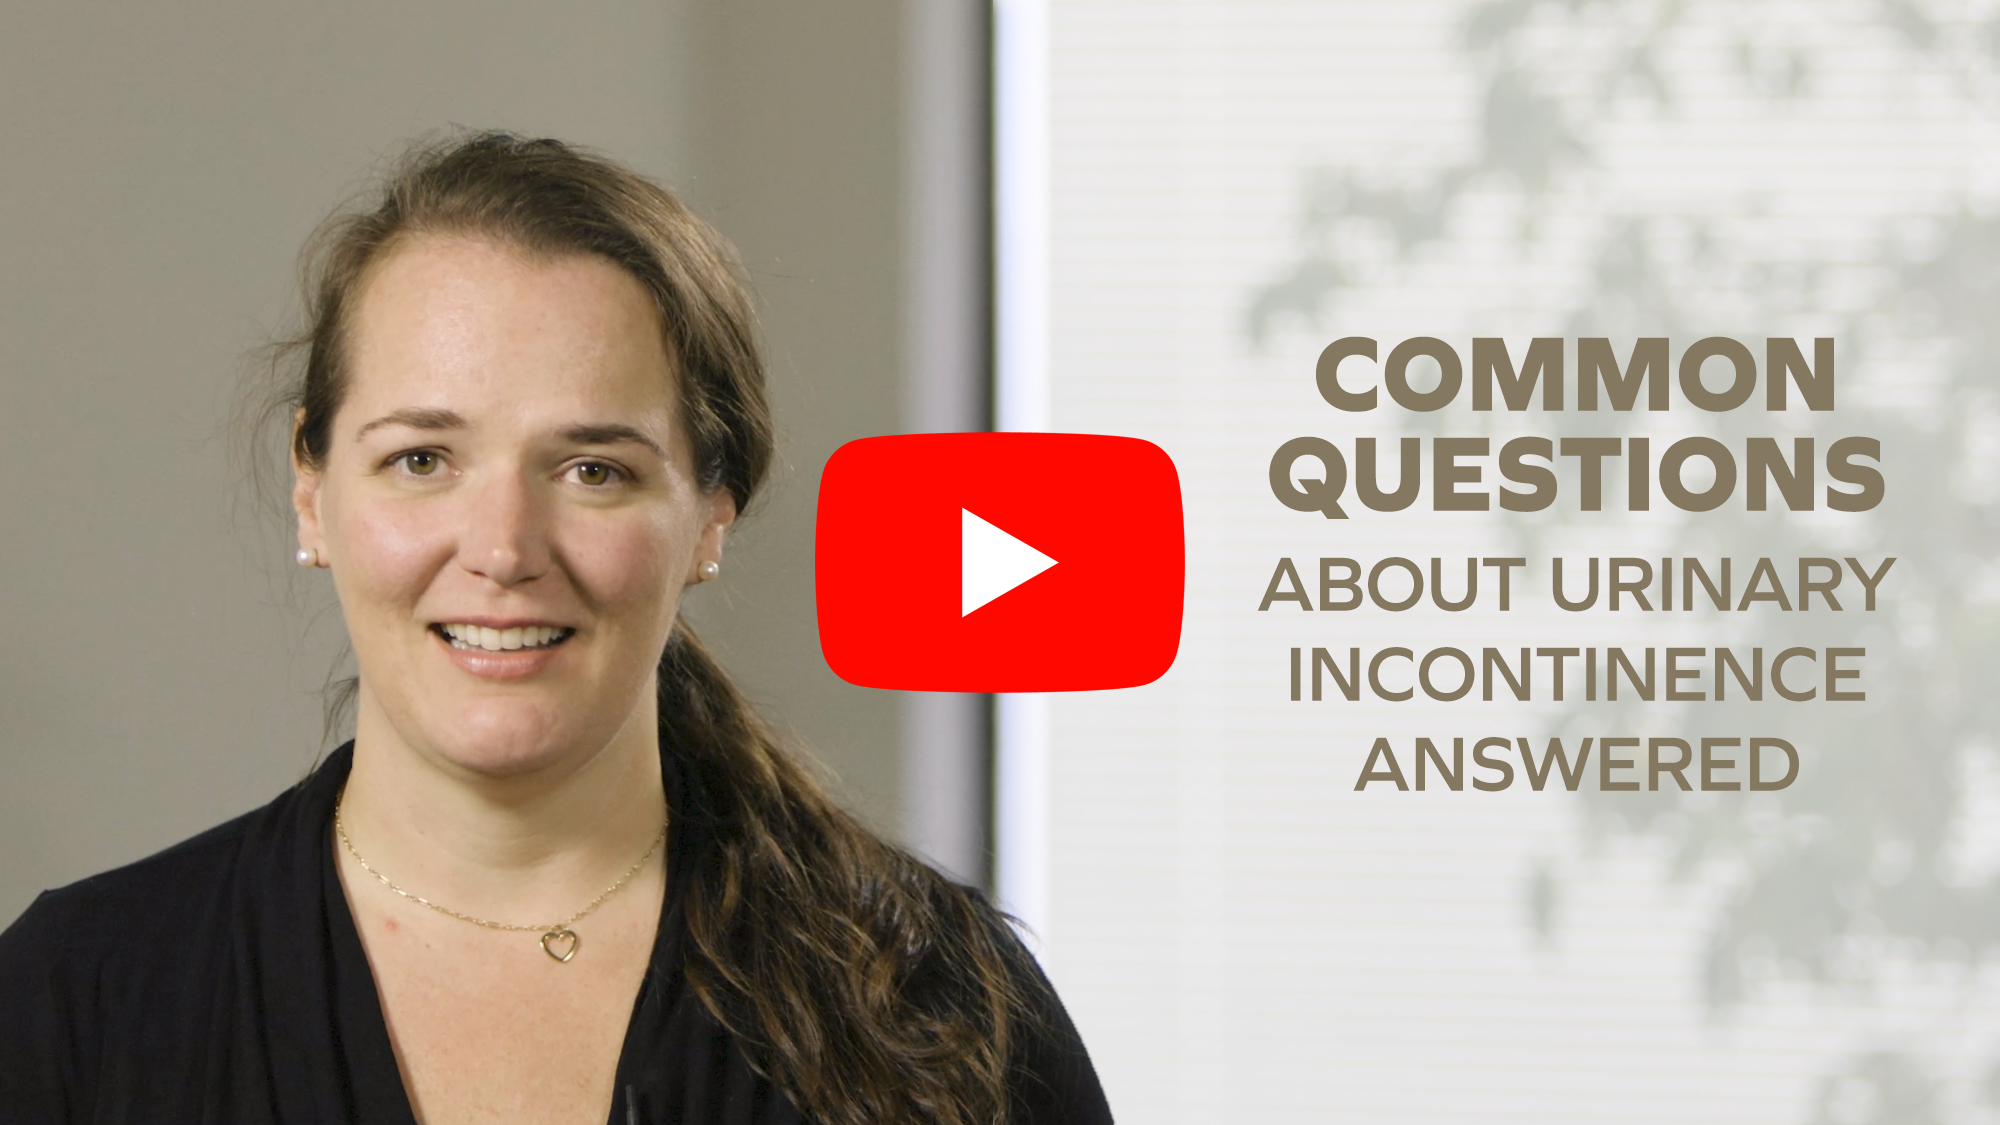 Common questions about urinary incontinence answered